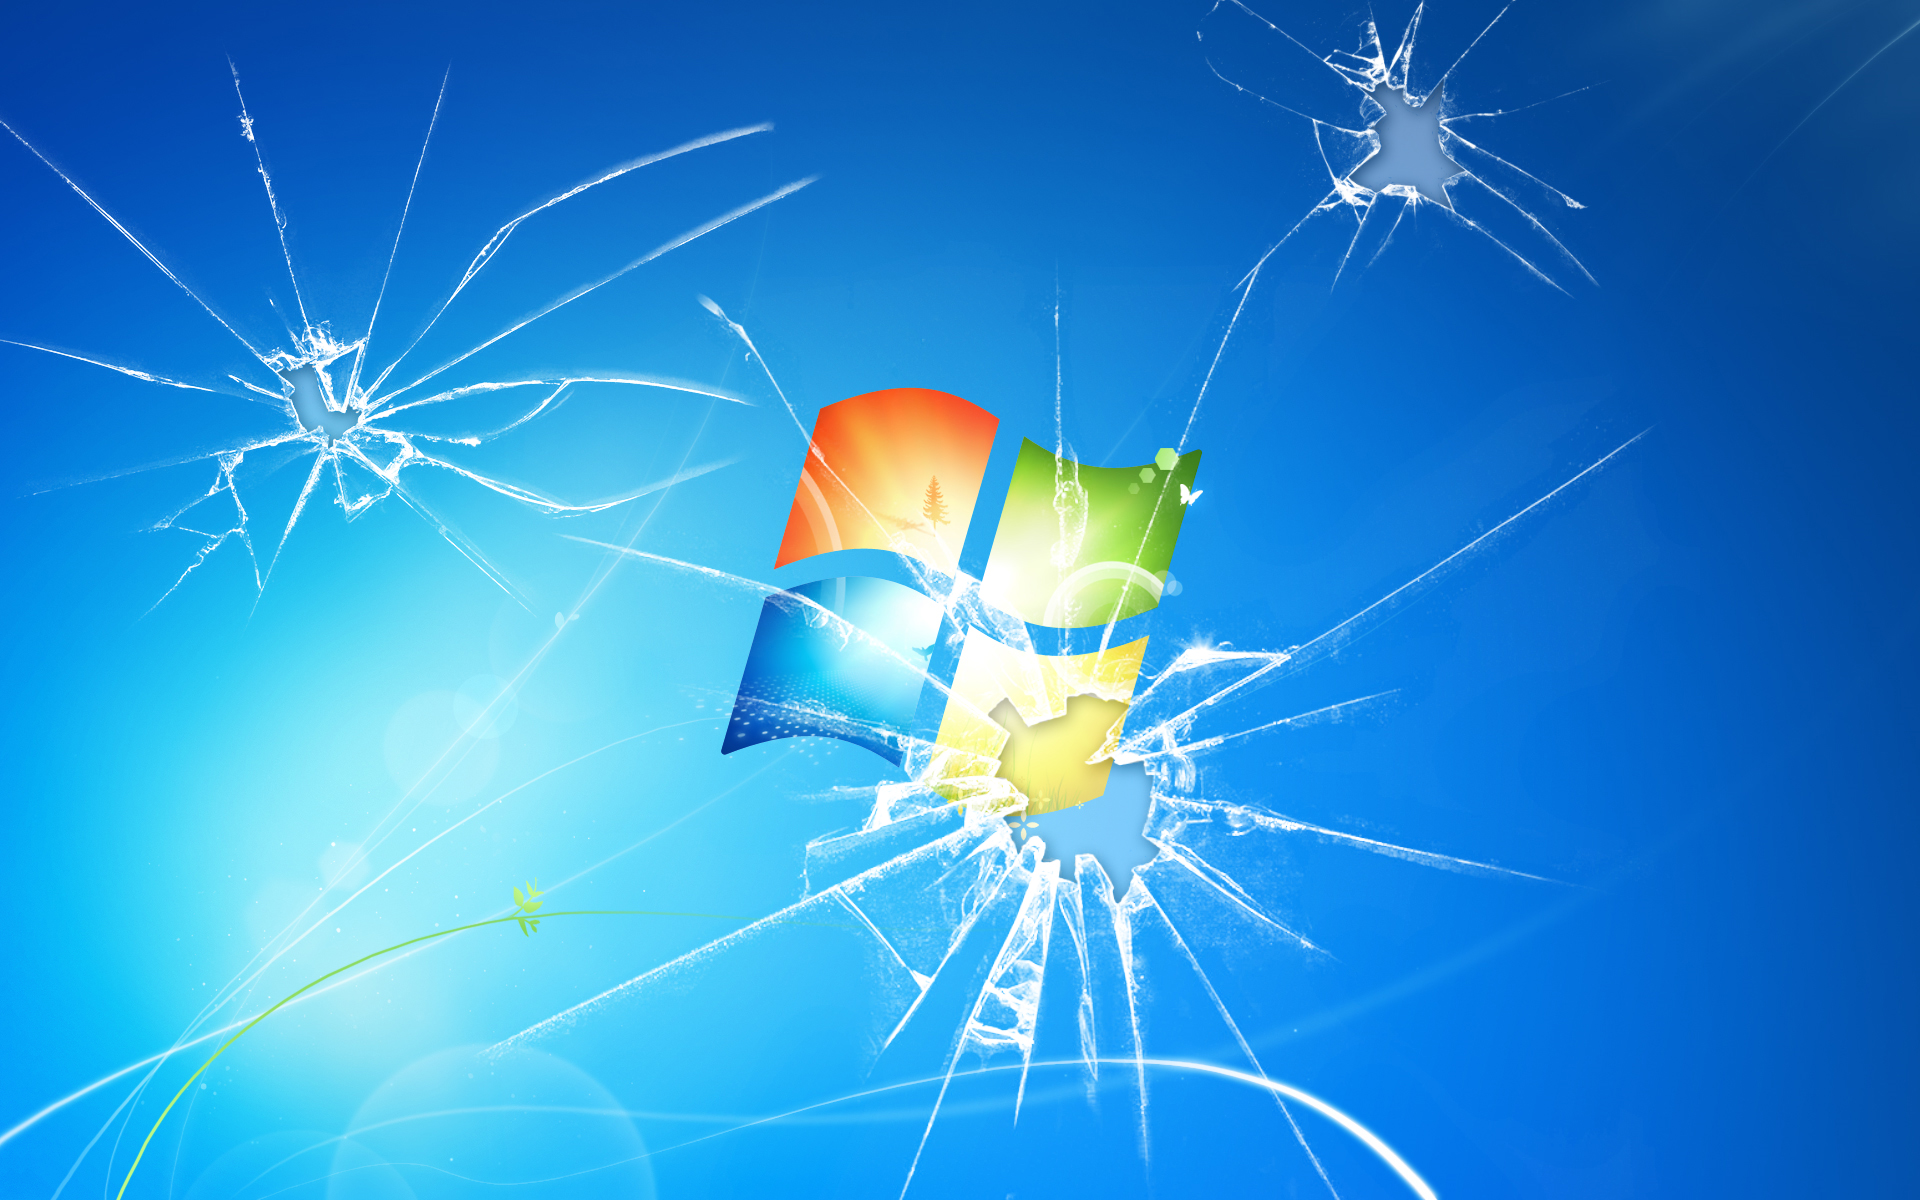 Broken Windows Background - WallpaperSafari